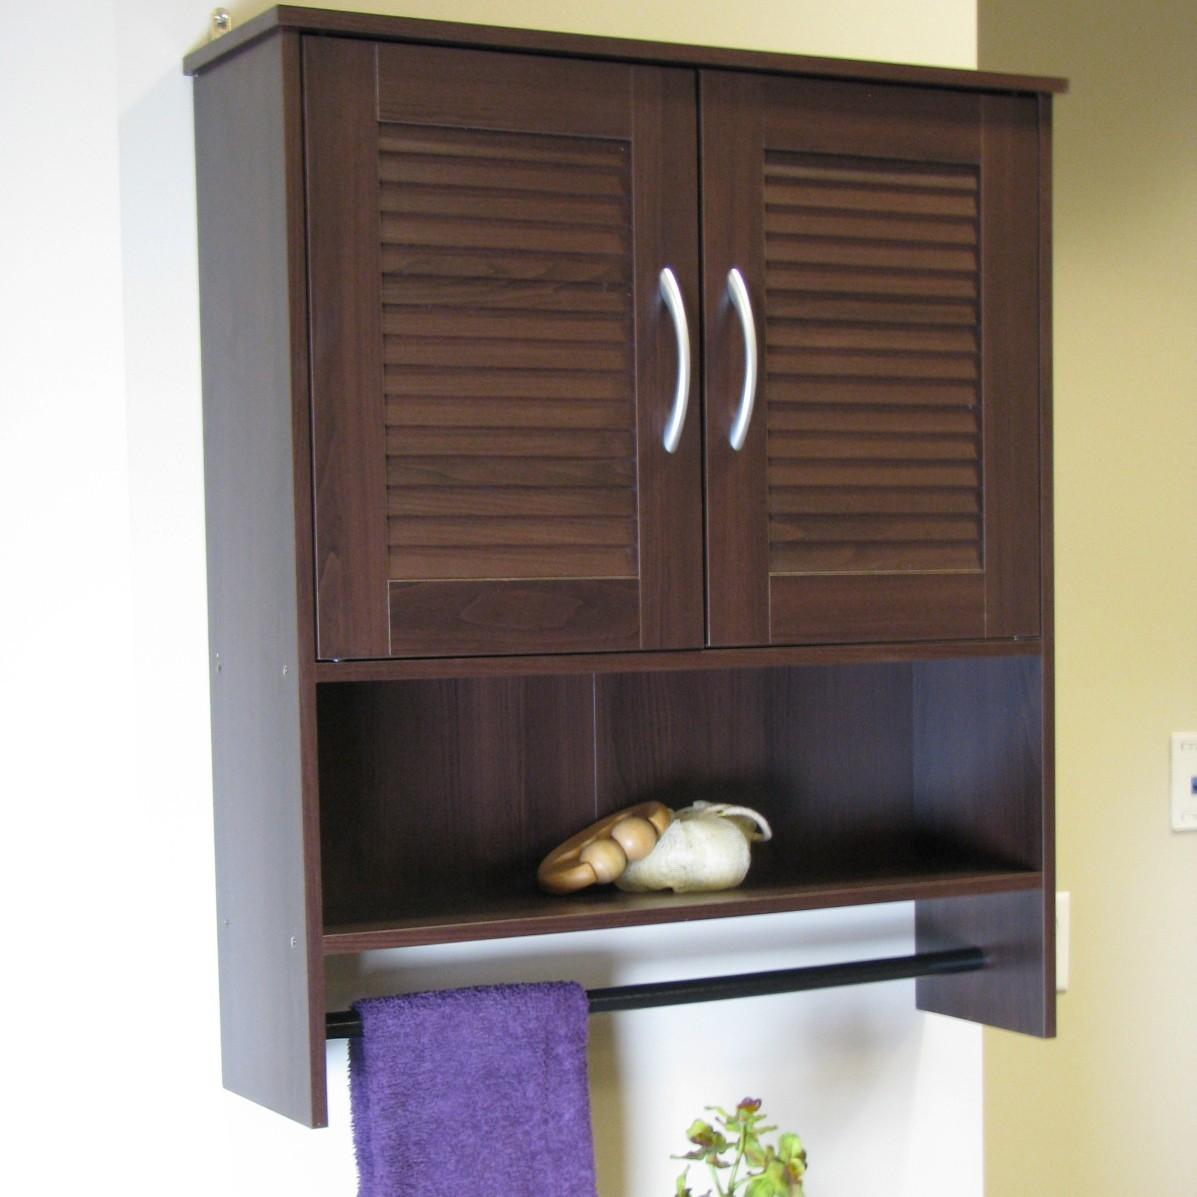 Concepts Bathroom Wall Cabinet Two Louvered Doors